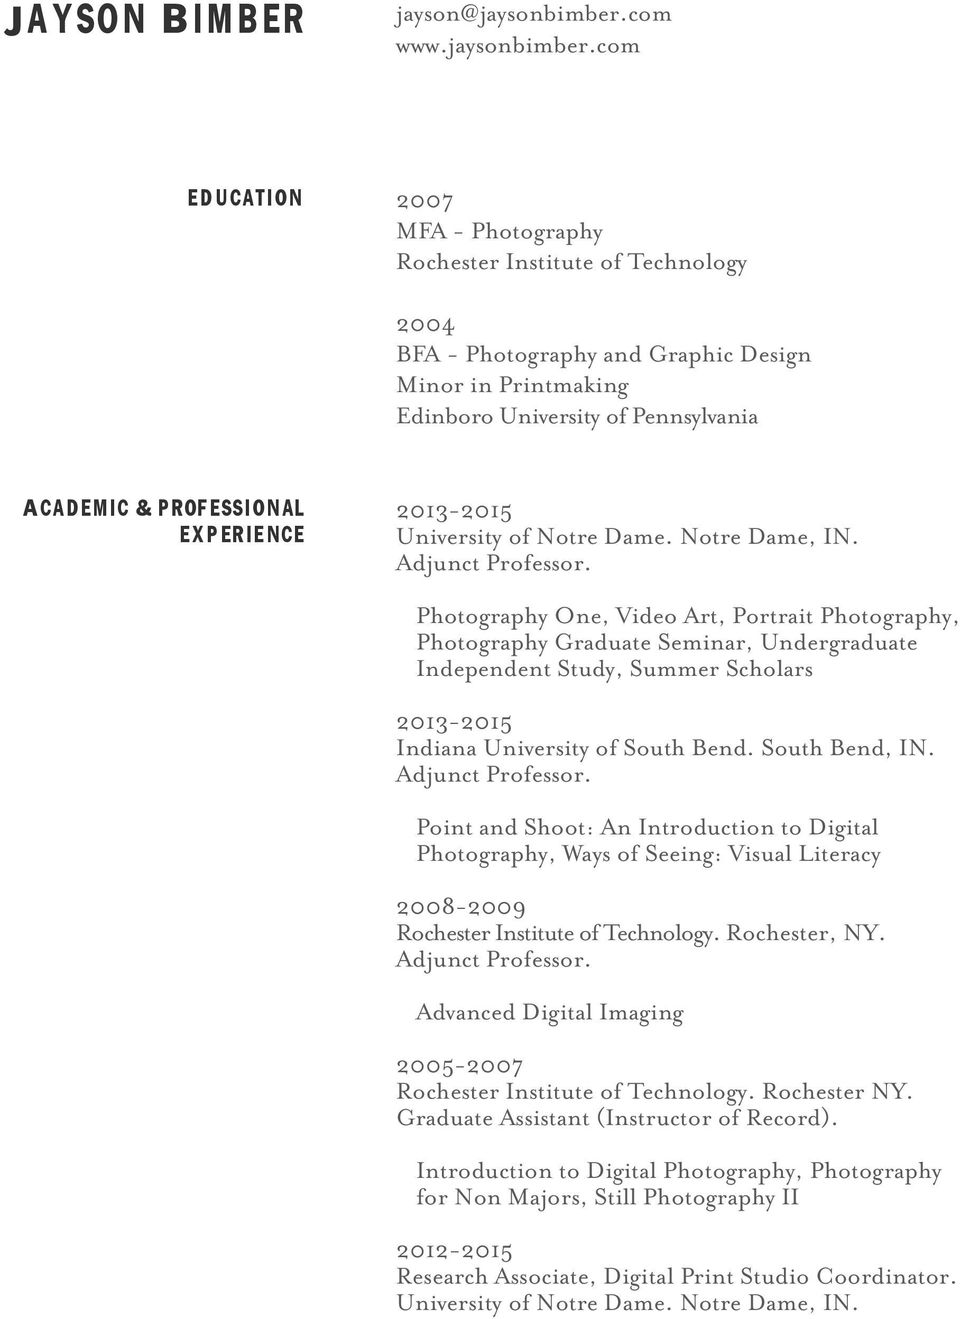 com education 2007 MFA - Photography Rochester Institute of Technology BFA - Photography and Graphic Design Minor in Printmaking Edinboro University of Pennsylvania Academic &professional experience